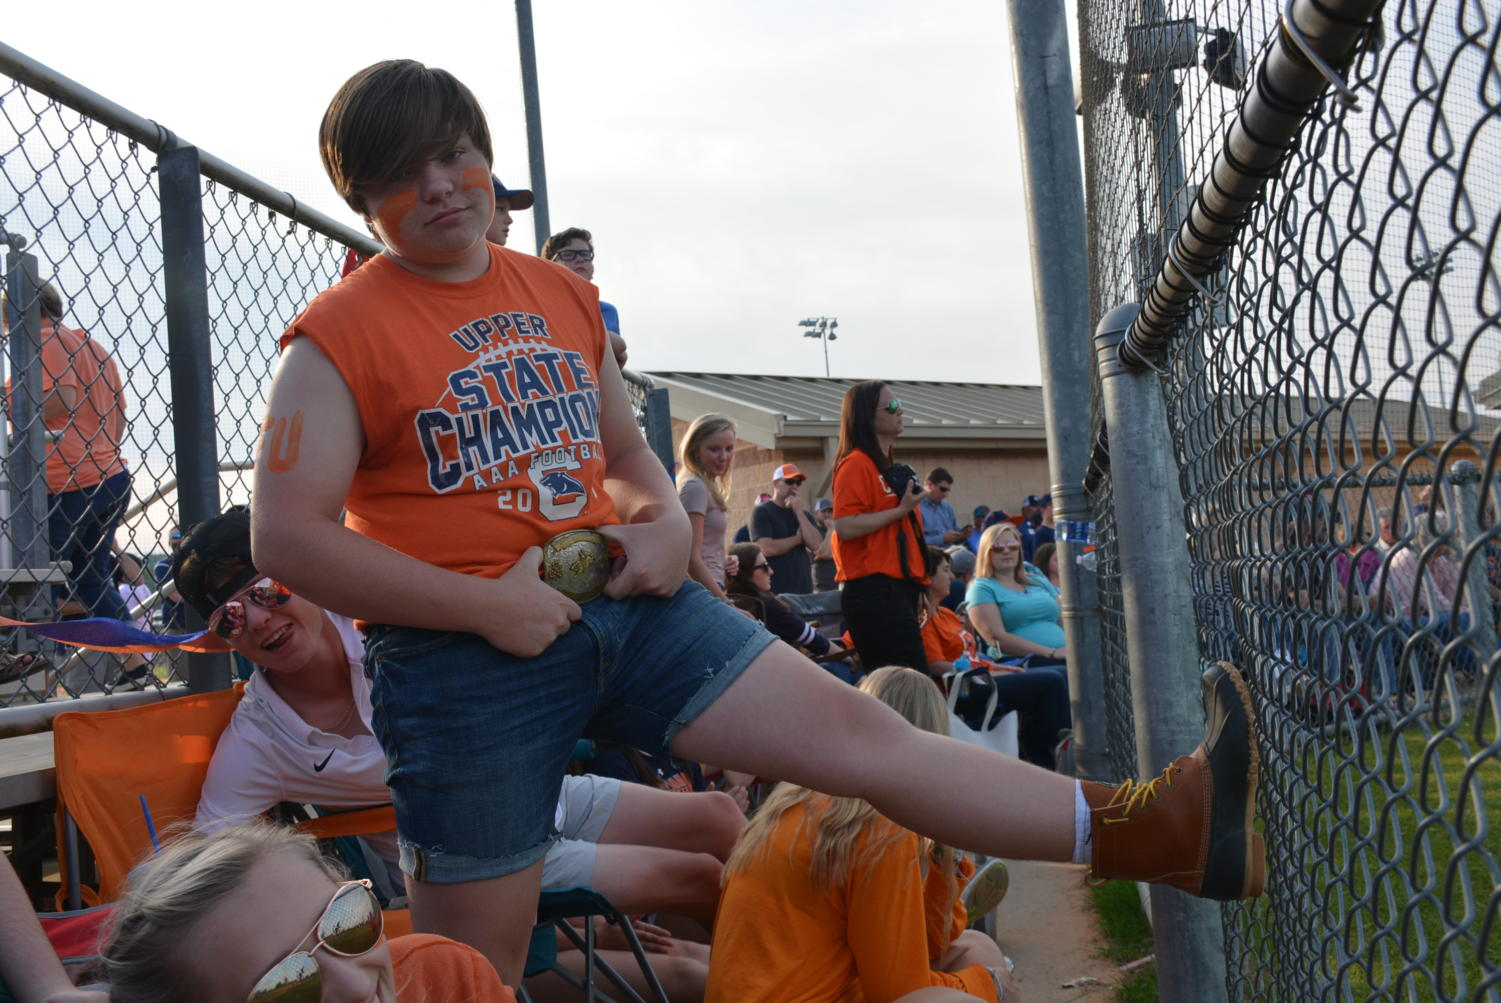 Sophomore+Jacob+Bagwell+in+his+jorts+and+orange+in+support+of+the+Panthers